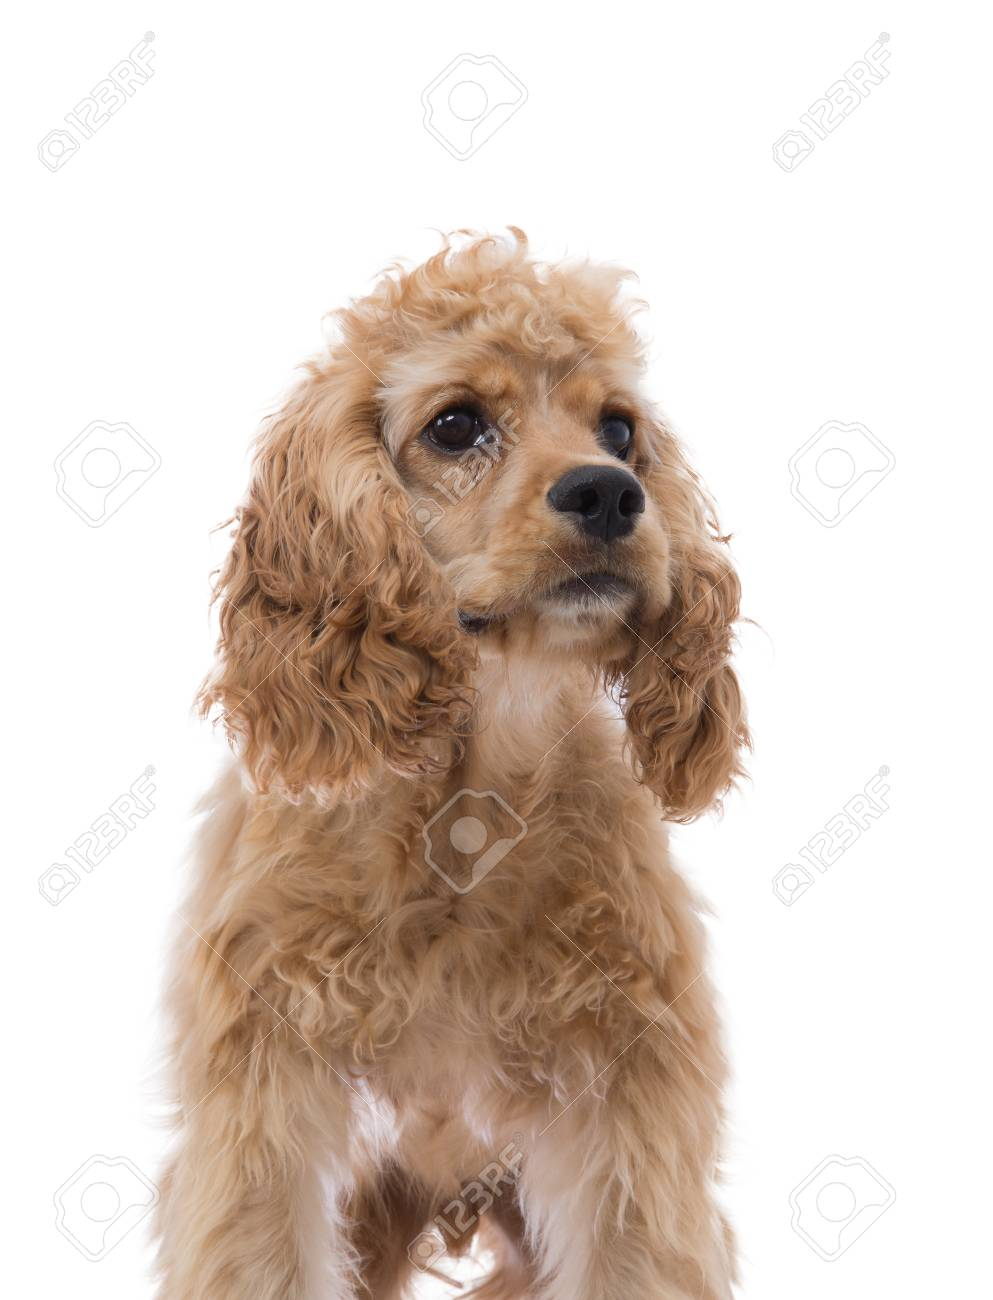 Close Up Partial Frontal Portrait Of A Golden Cocker Spaniel Stock Photo Picture And Royalty Free Image Image 91010031